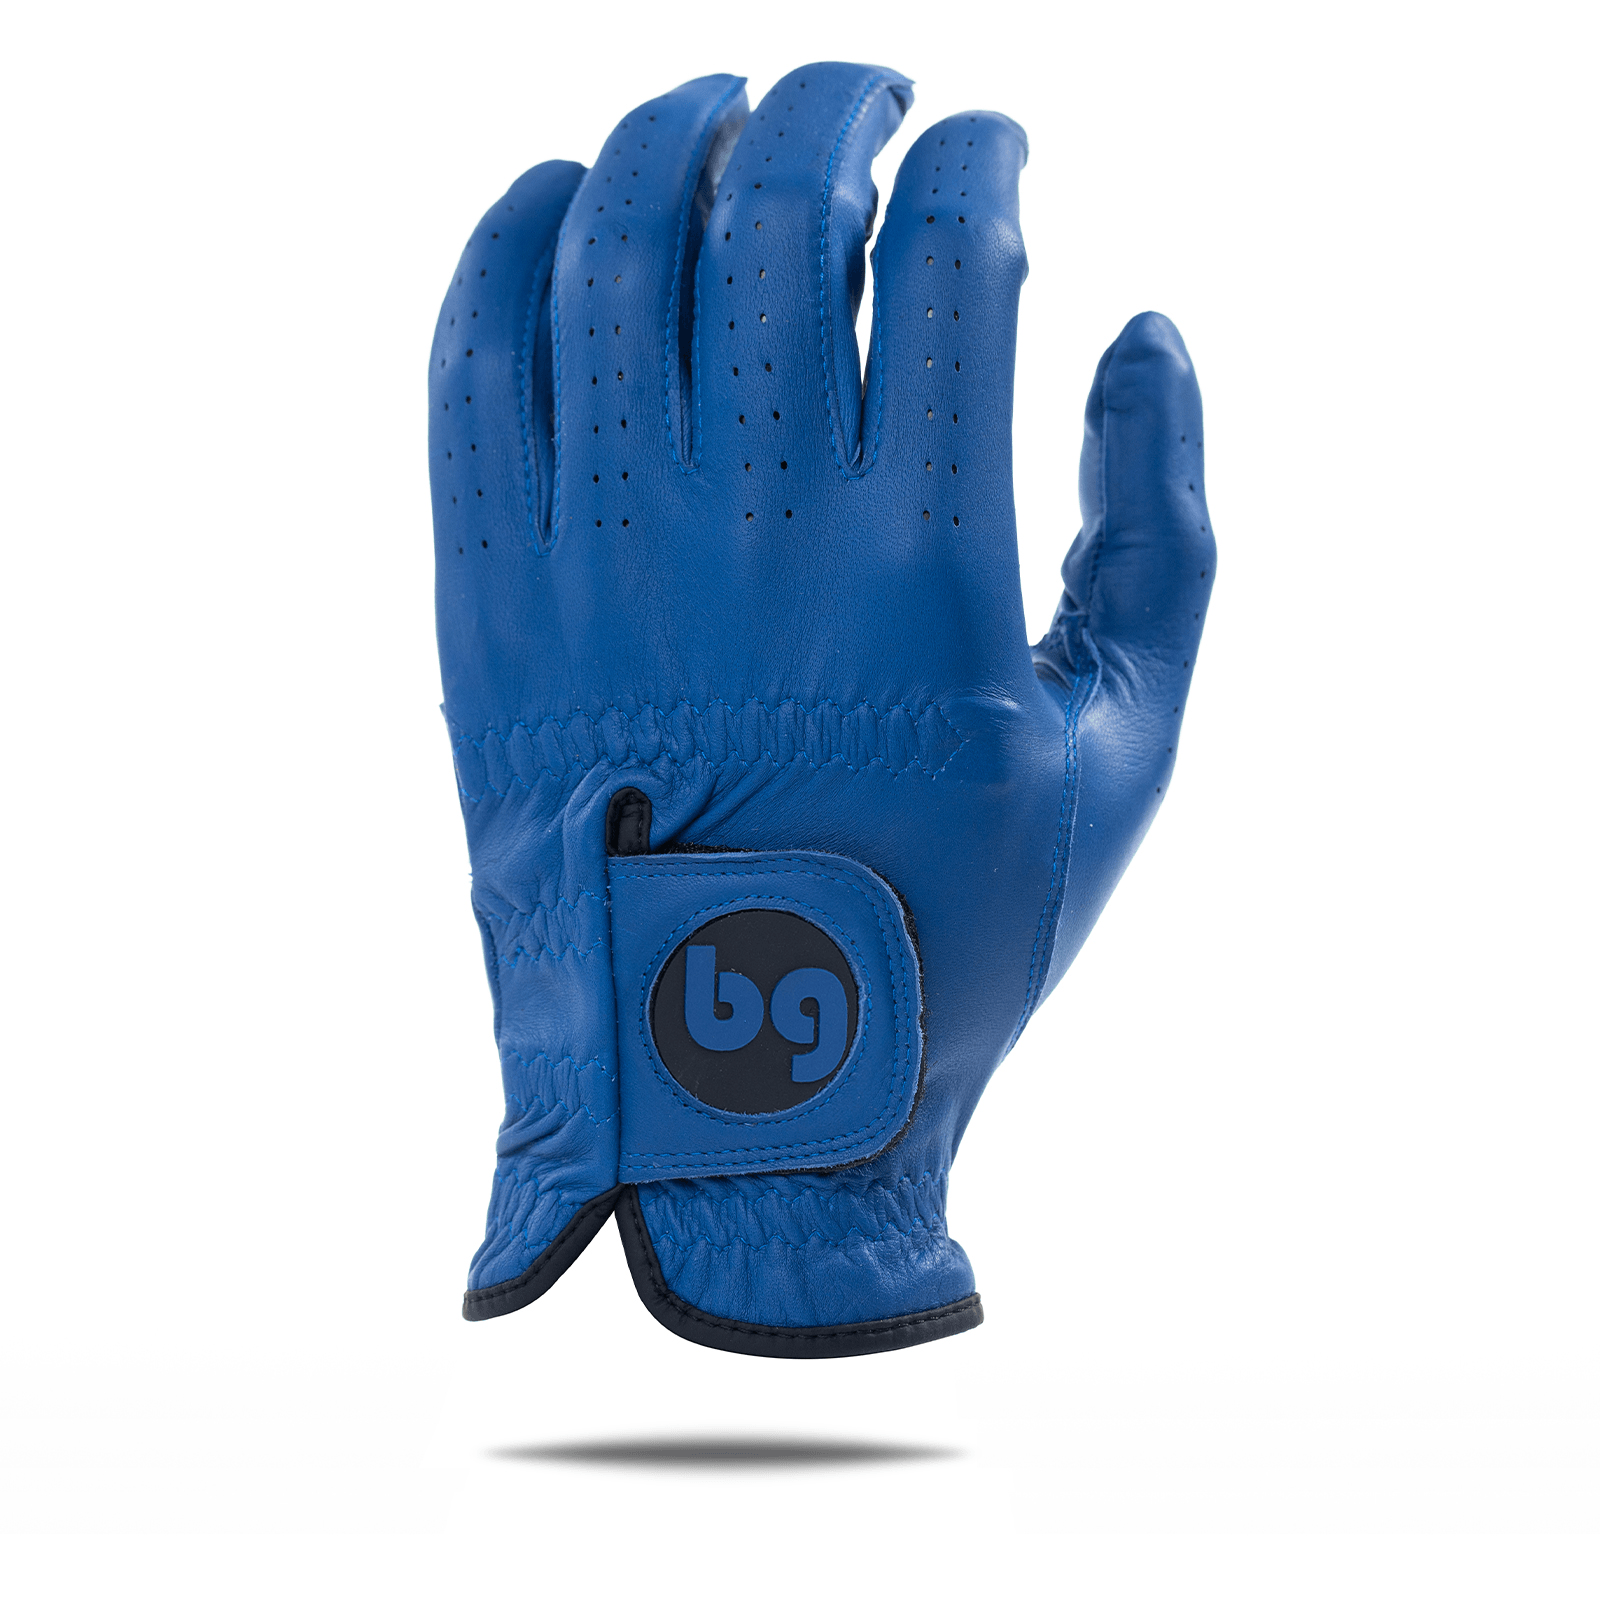 Blue Elite Tour Golf Glove